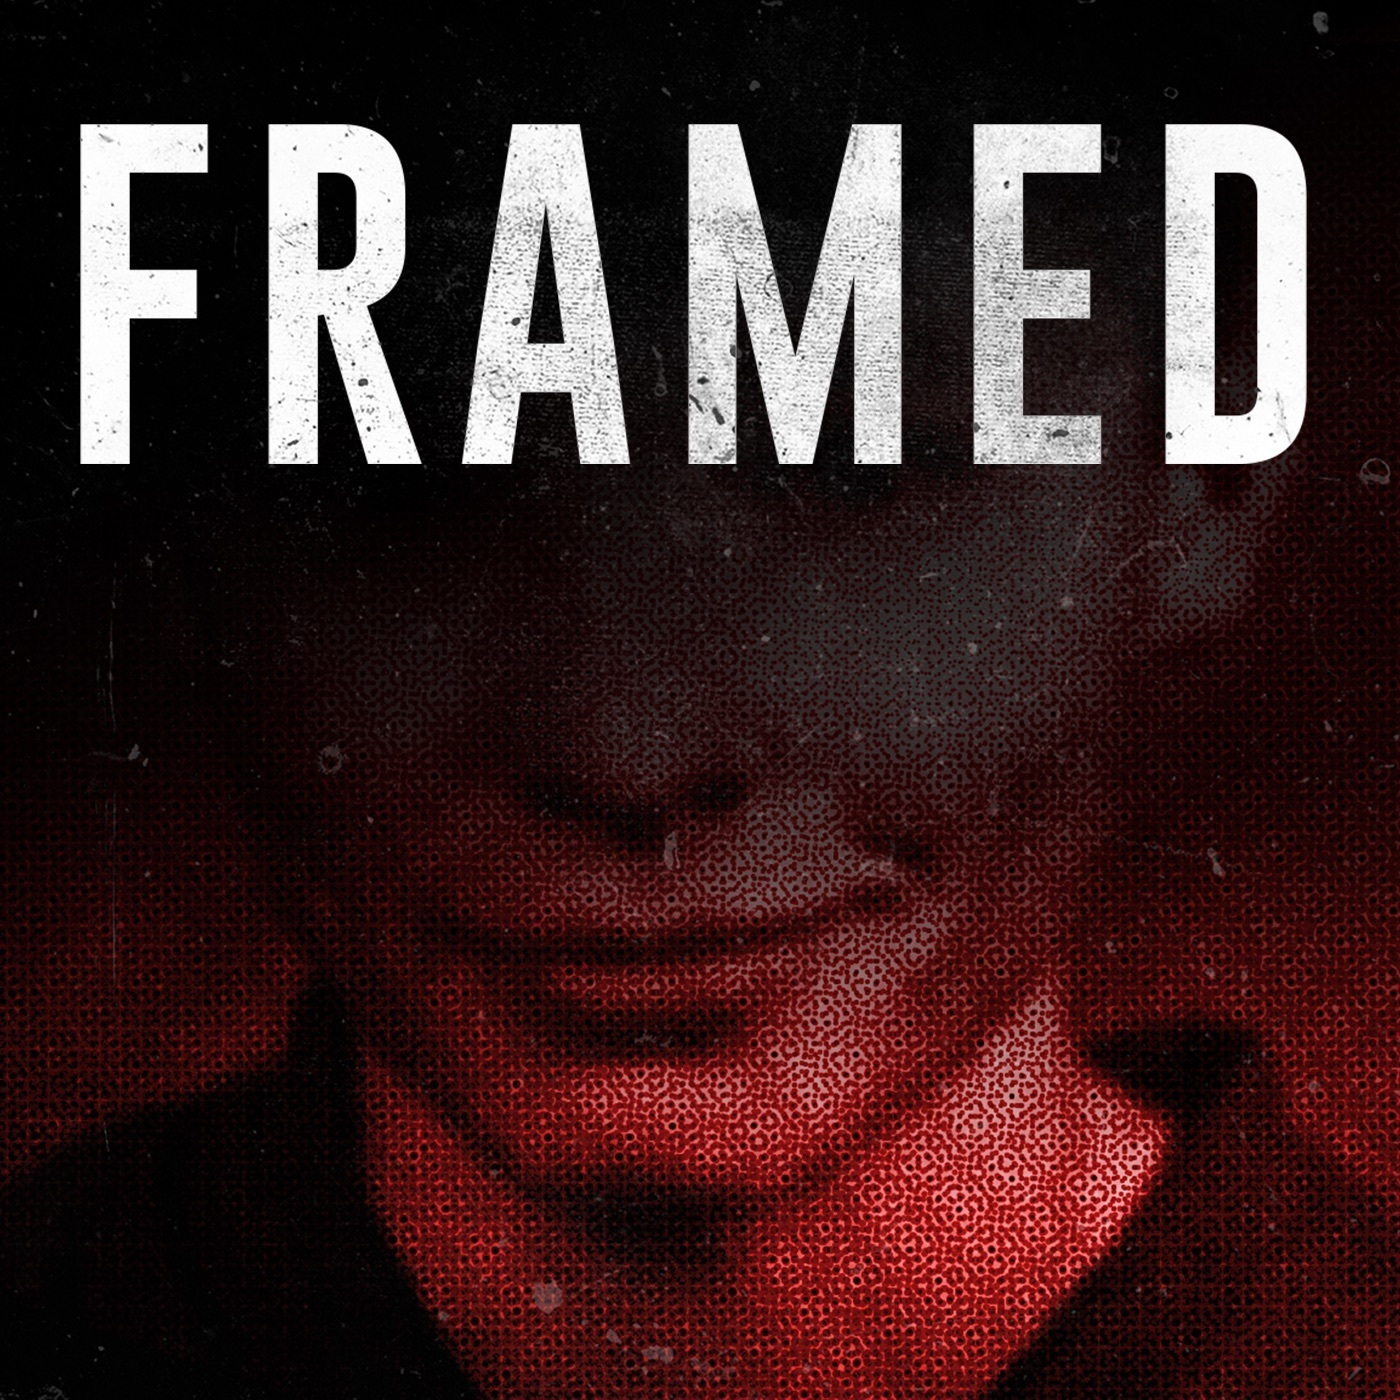 Framed: An Investigative Story - Hosted By Aaron